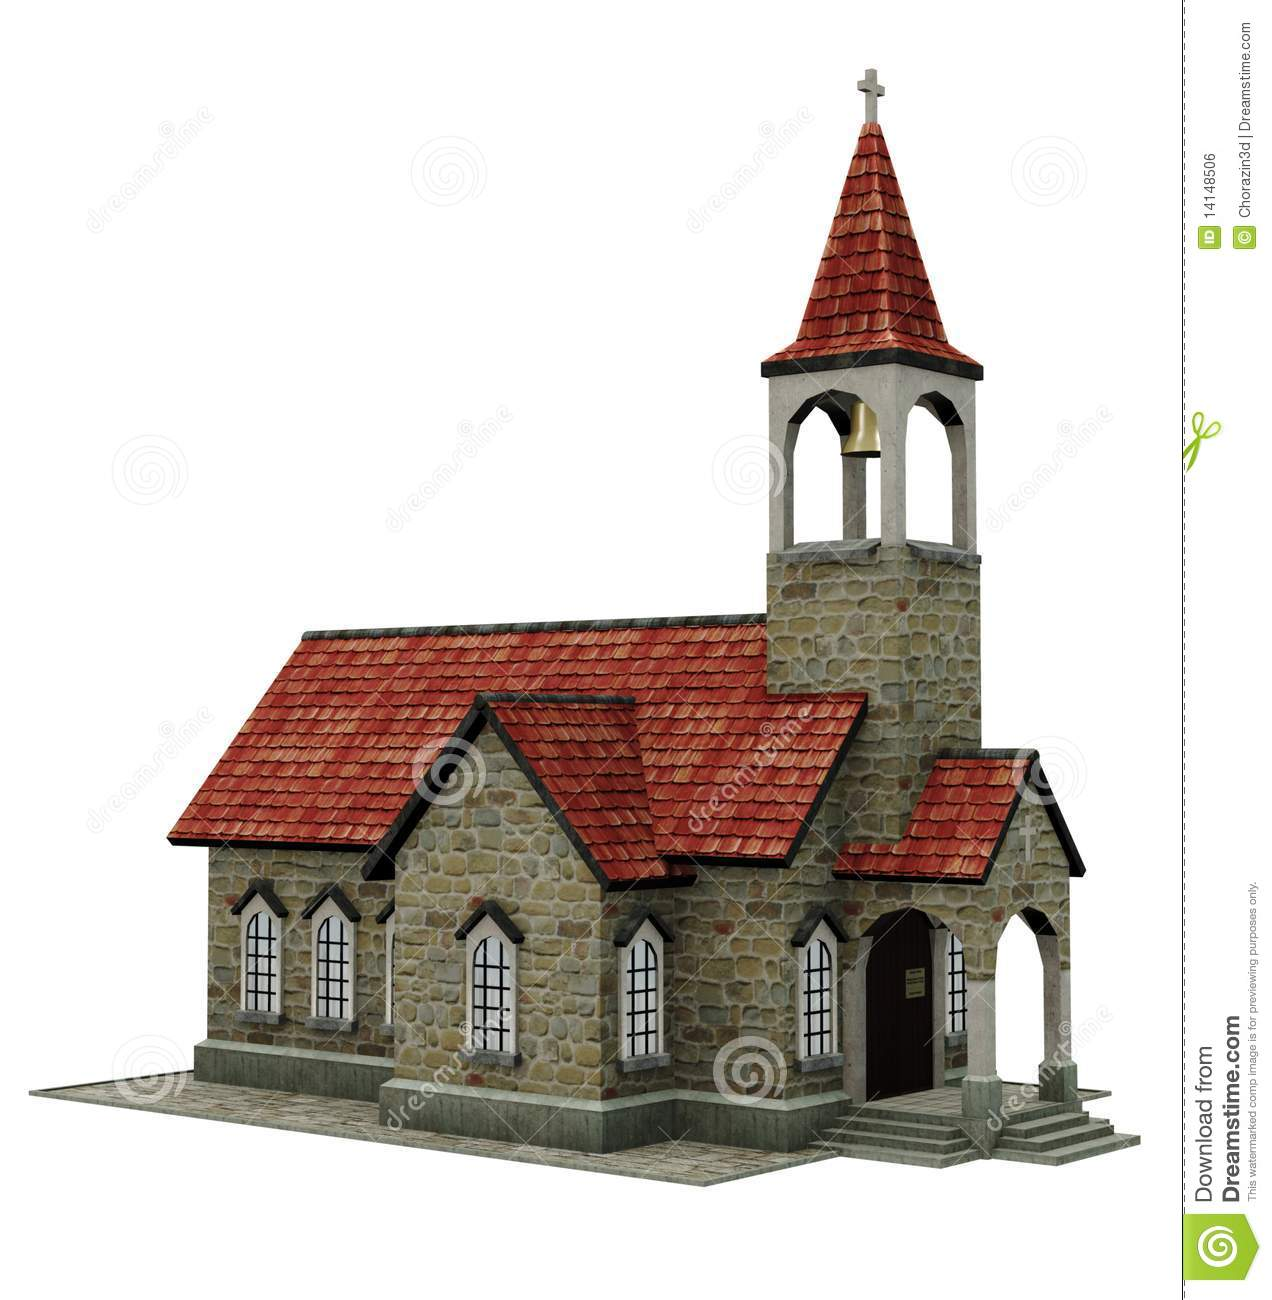 Fantasy Church Building Royalty Free Stock Image Image 14148506